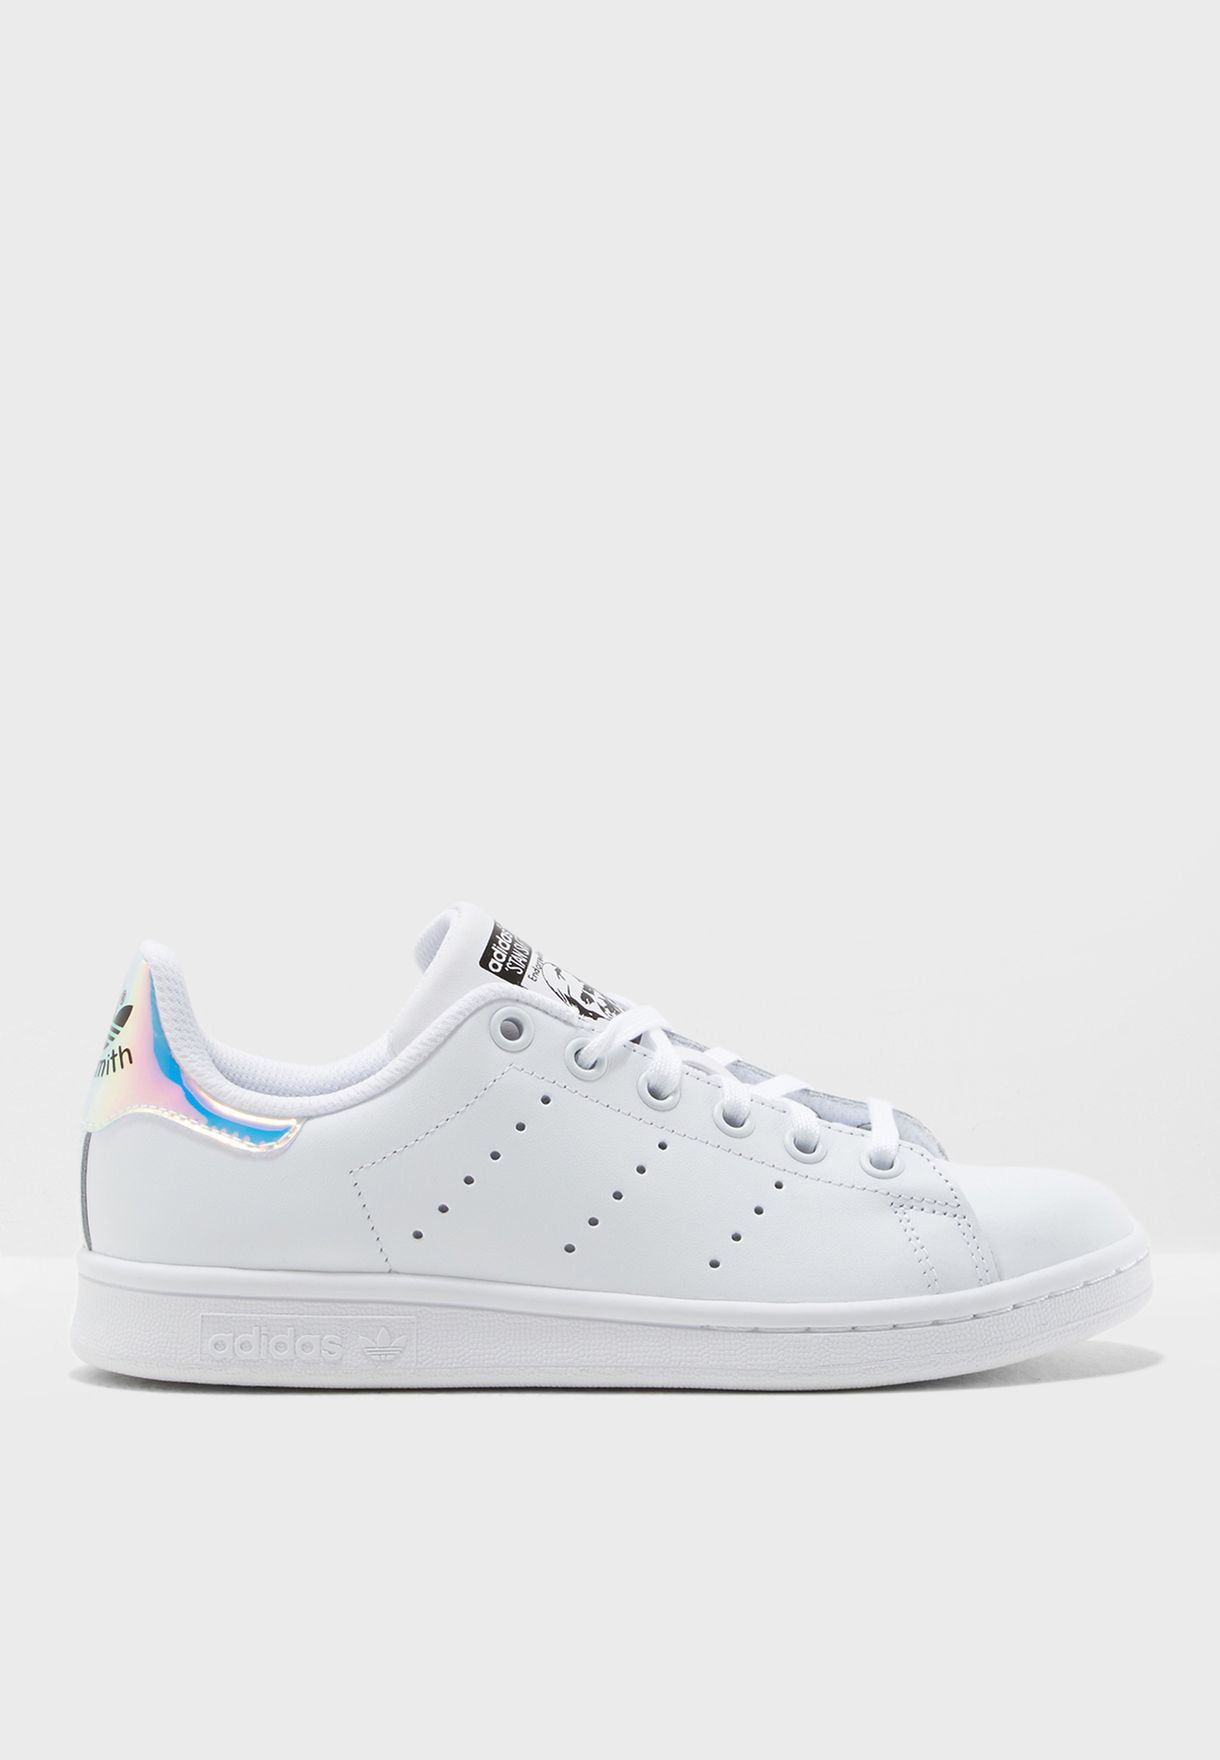 4539c36e7ef85 Shop adidas Originals white Youth Stan Smith AQ6272 for Kids in ...